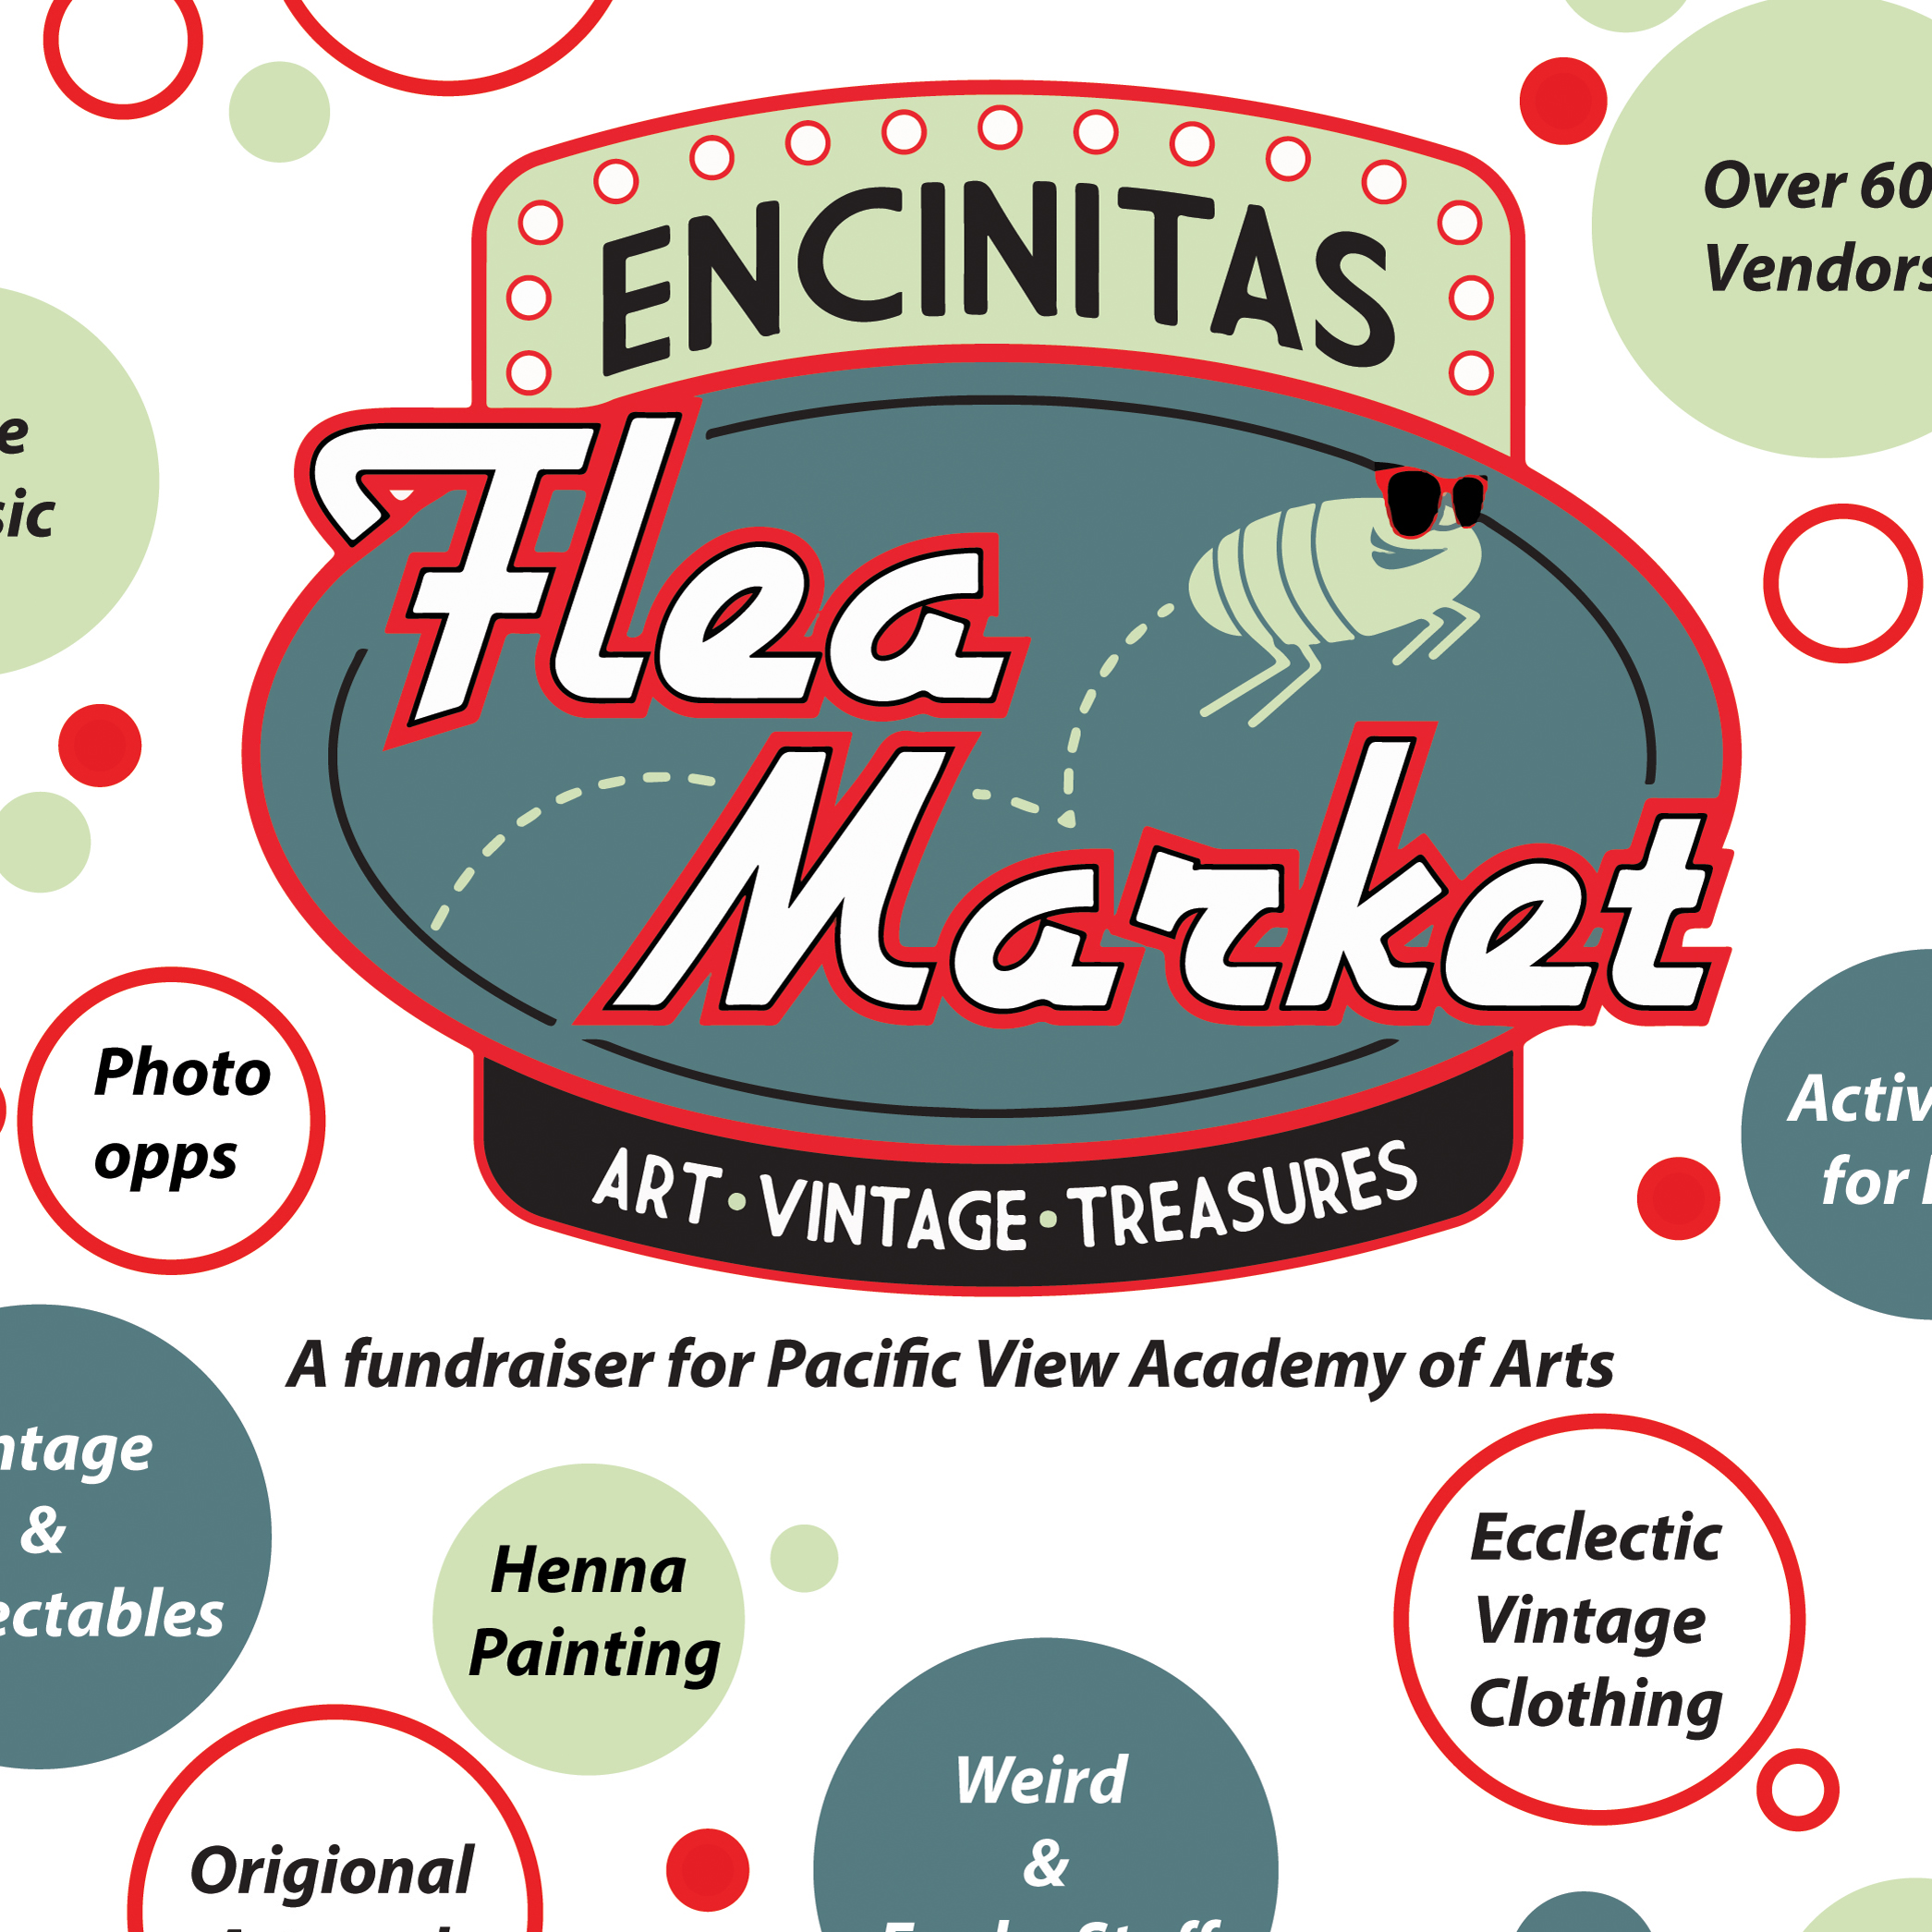 The Encinitas Flea Market